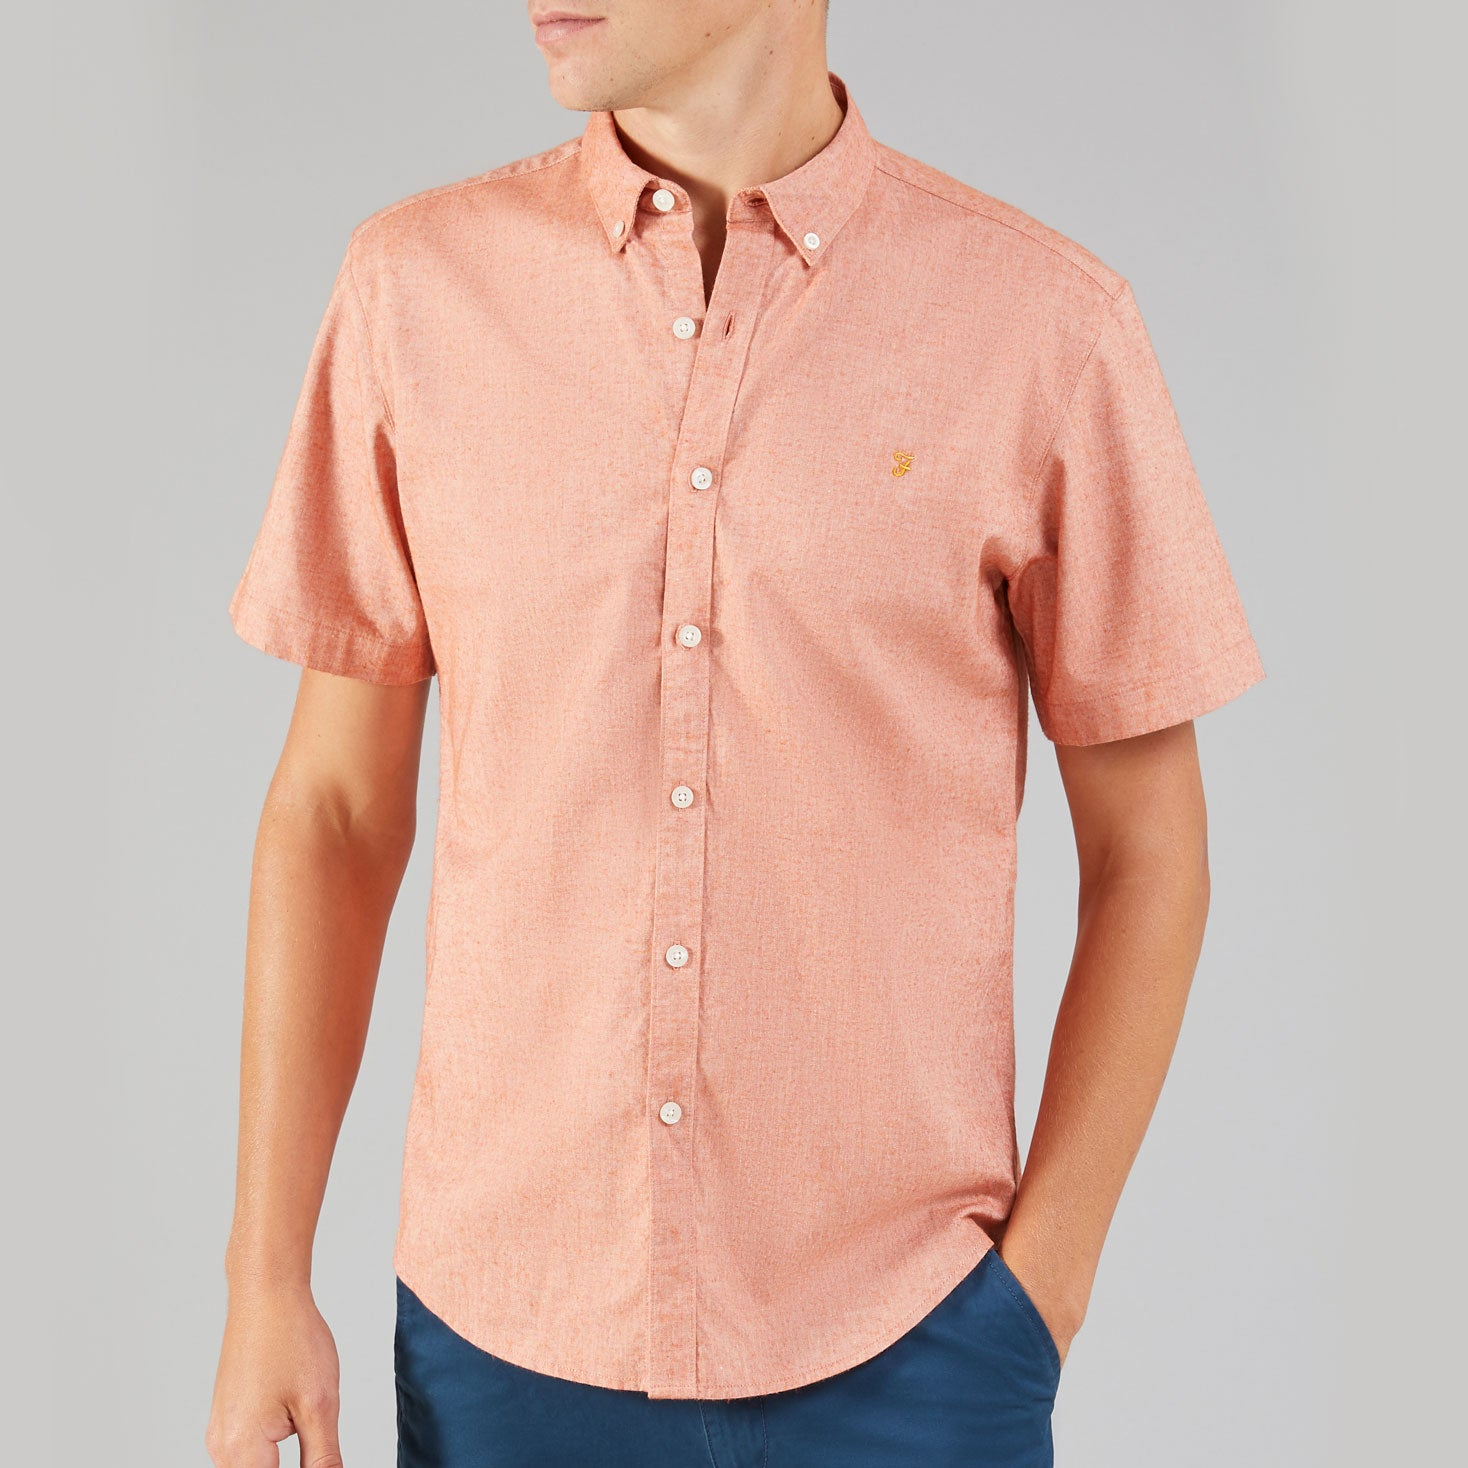 Farah Steen Slim Short Sleeve Oxford Shirt GoldFish